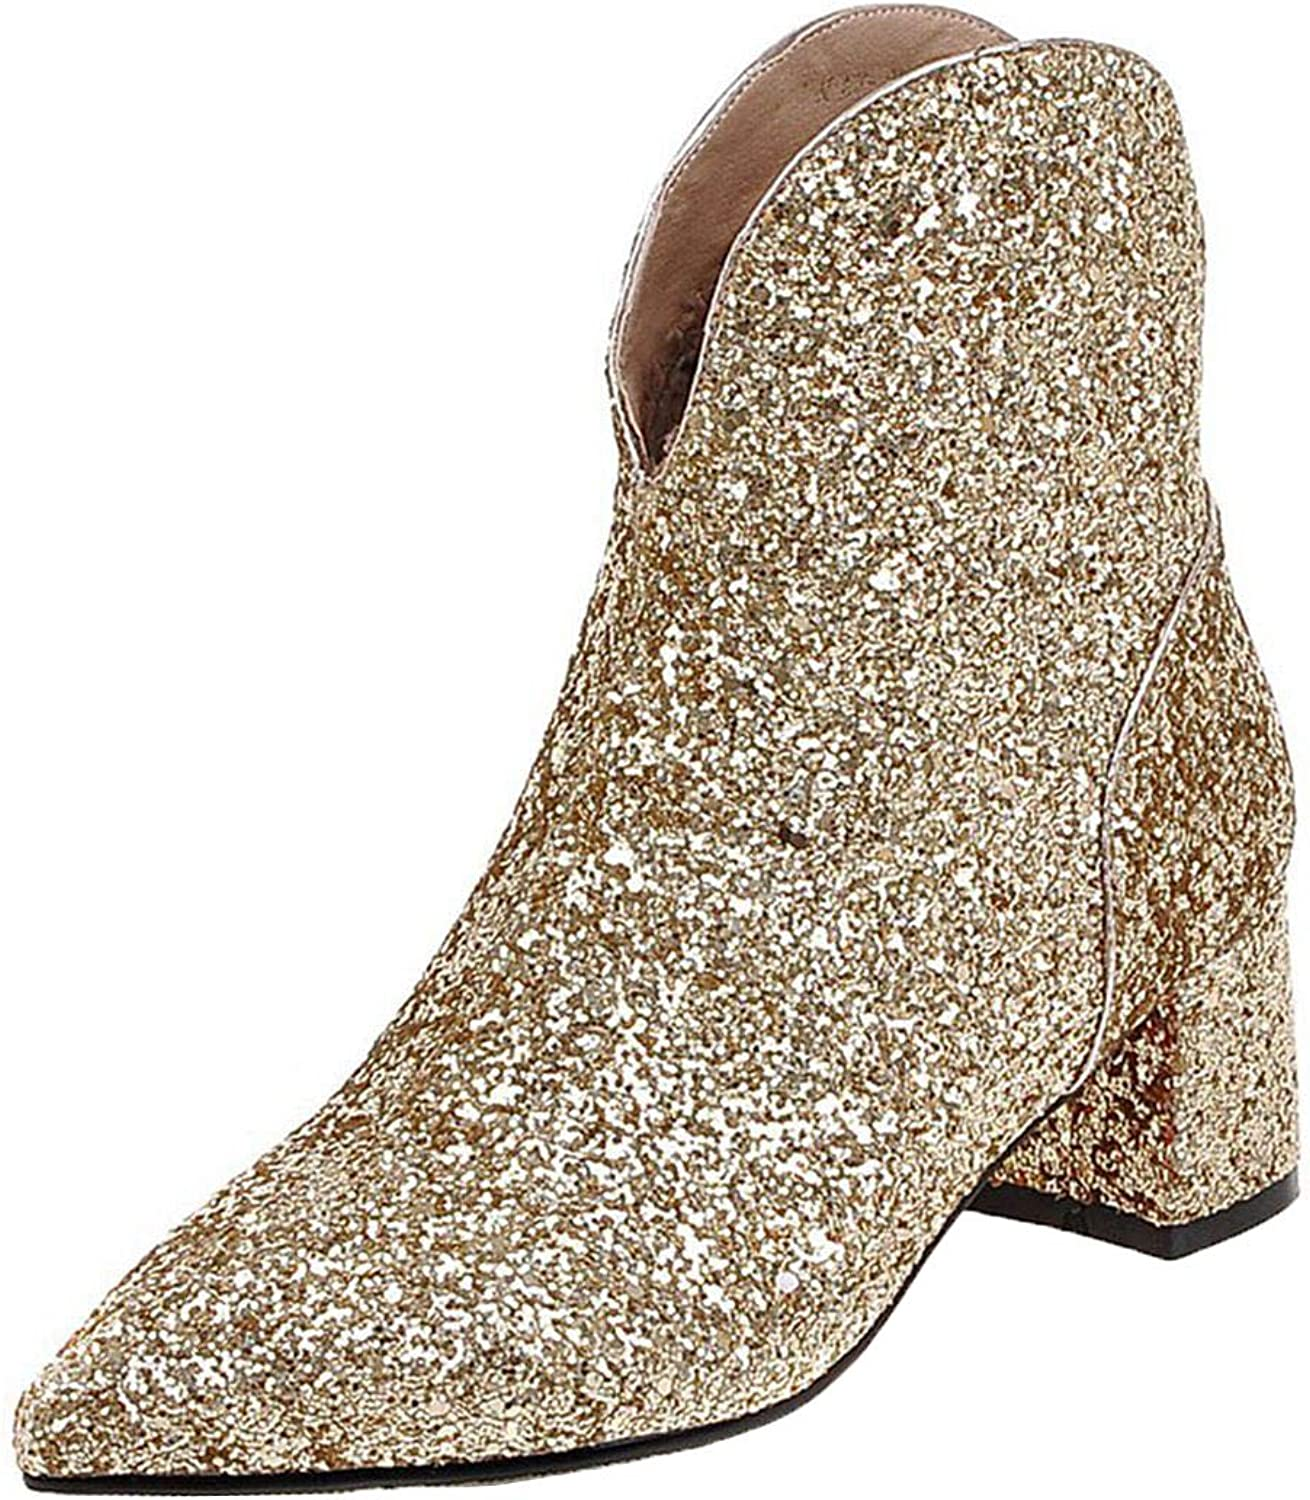 Vitalo Womens Sparkly Glitter Cowboy Mid Block Heel Ankle Boots Charming Dress Booties